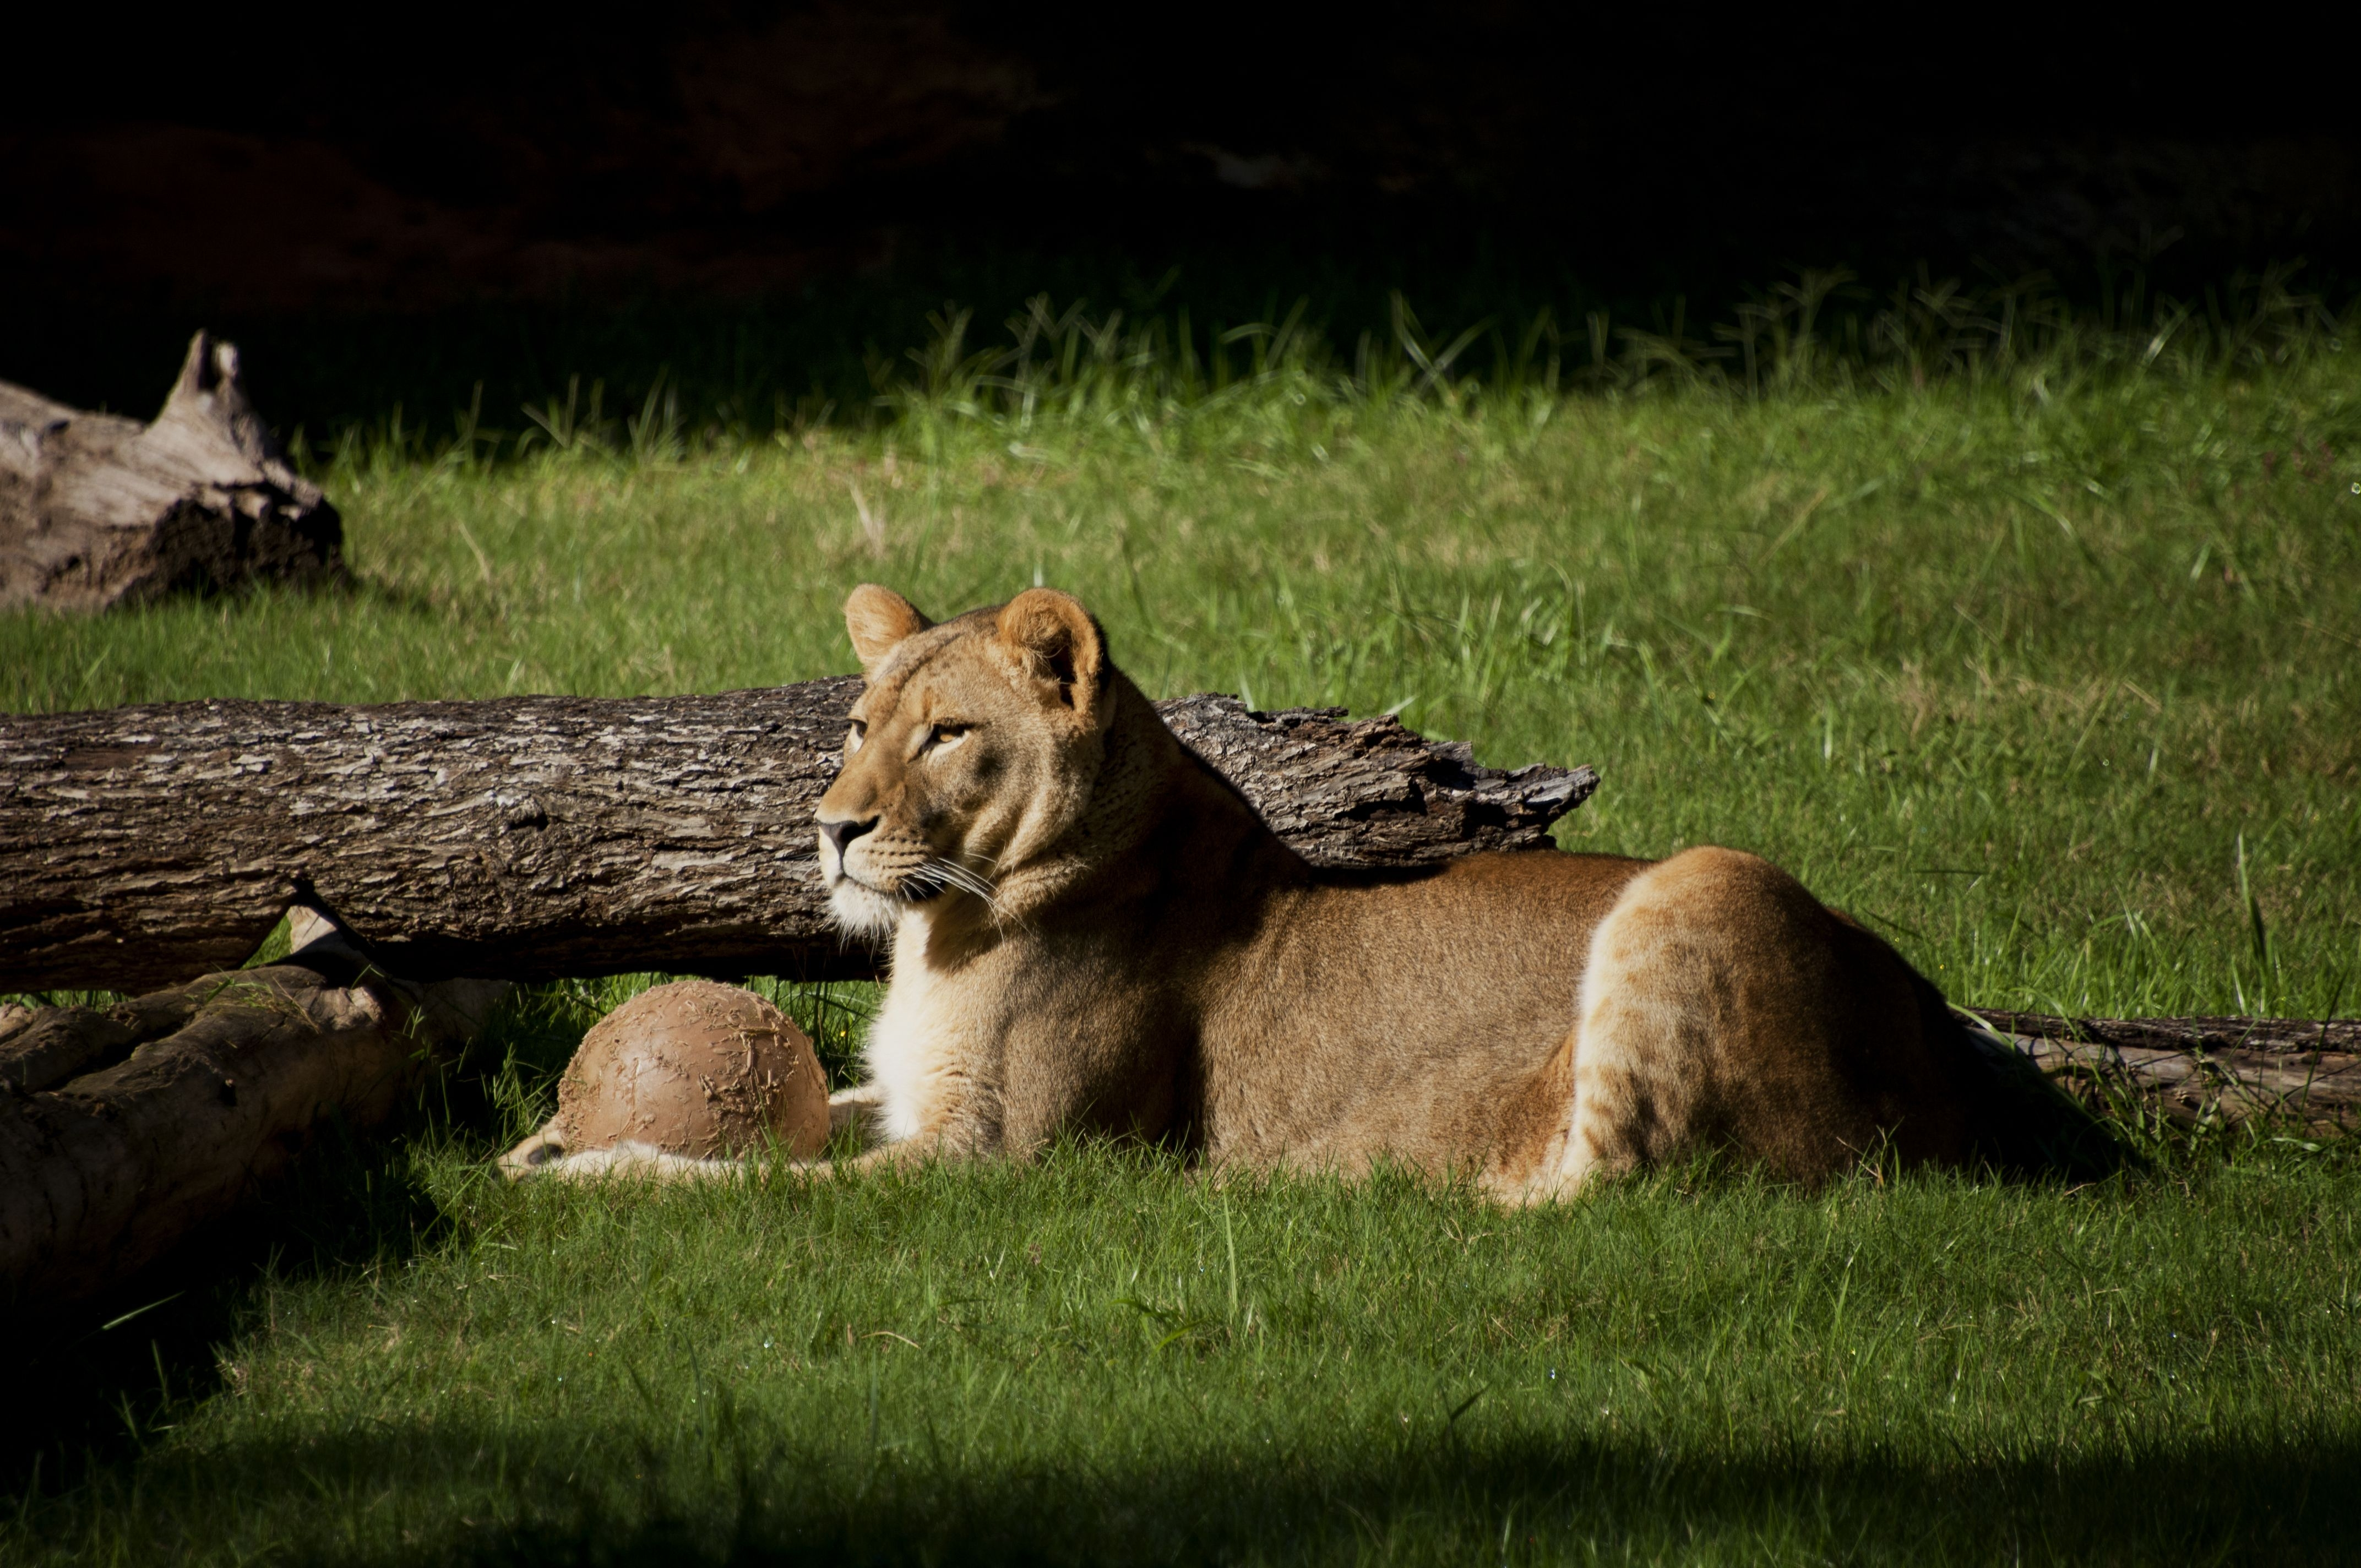 120625 download wallpaper Animals, Lion, Grass, Log, To Lie Down, Lie screensavers and pictures for free